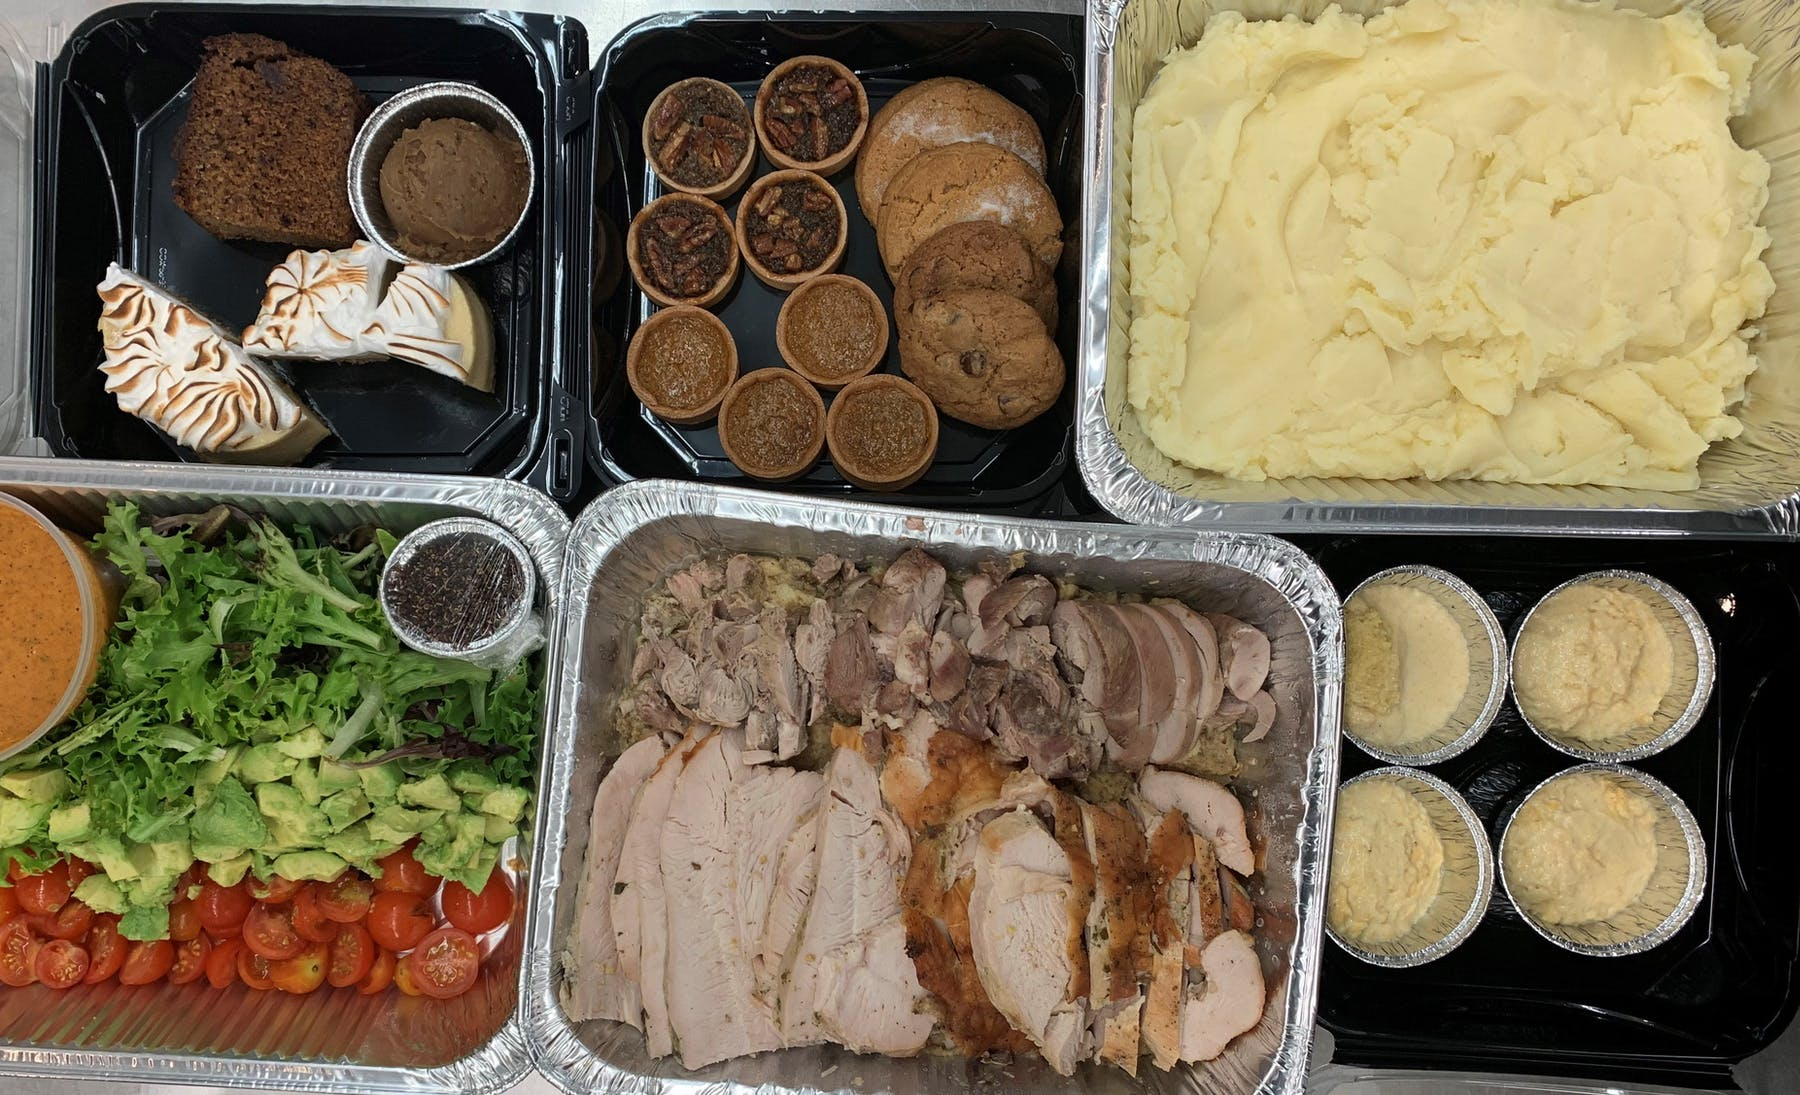 a box filled with different types of food on a tray